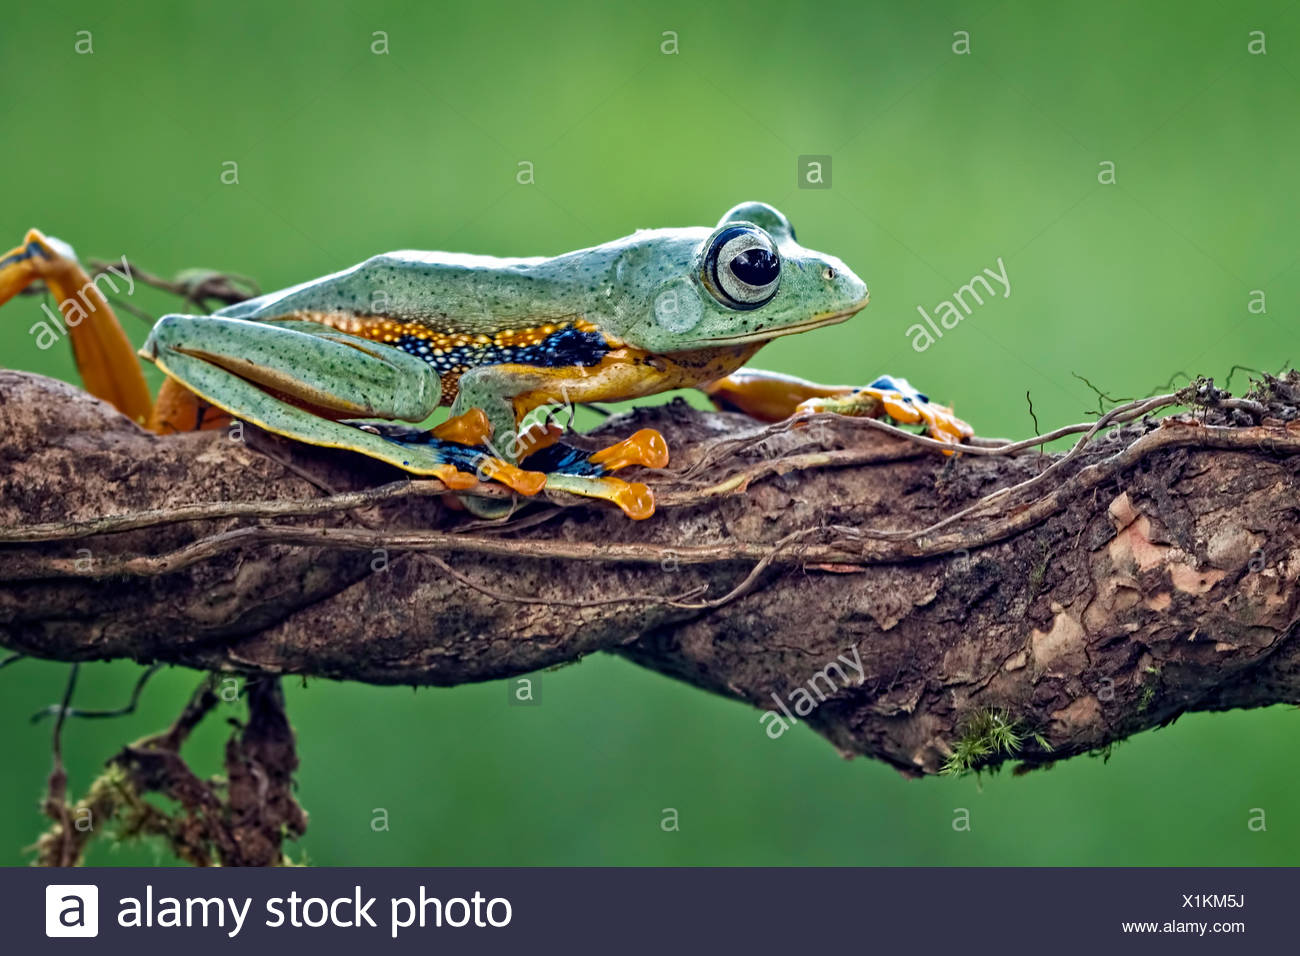 Frog sitting on a branch Stock Photo